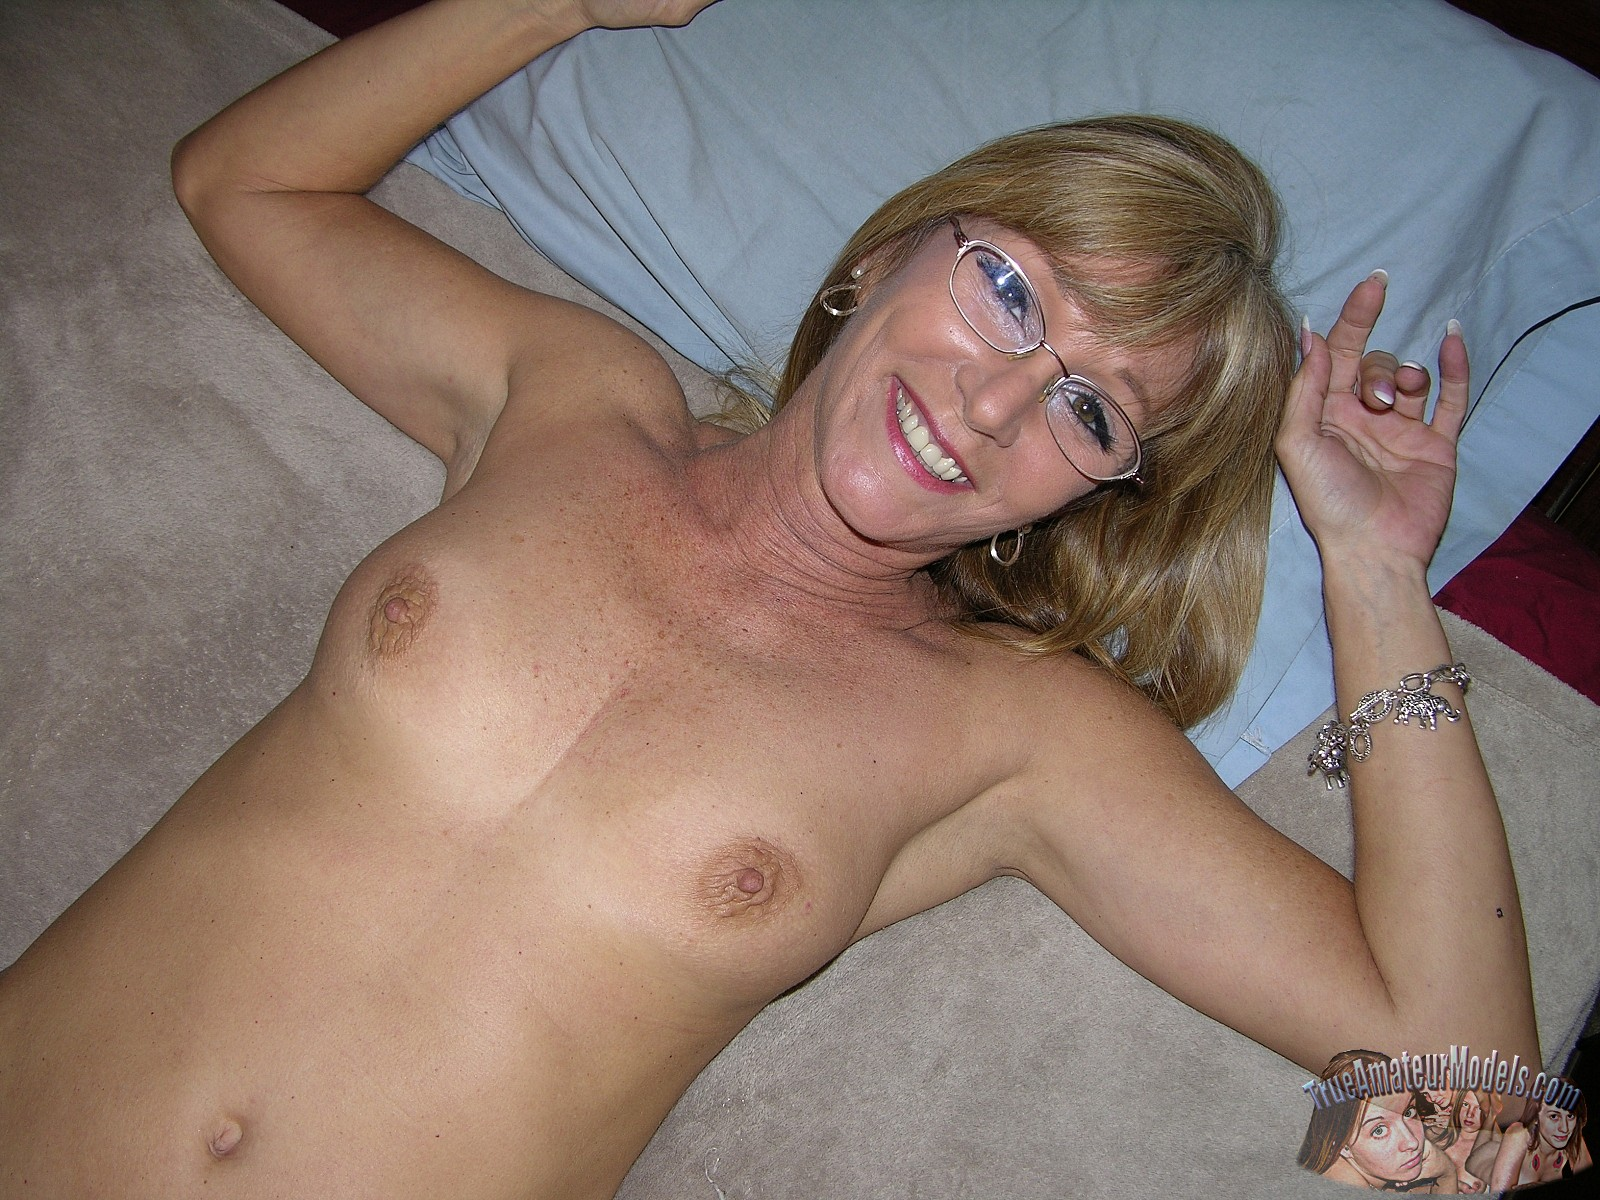 Nude milfs with glasses